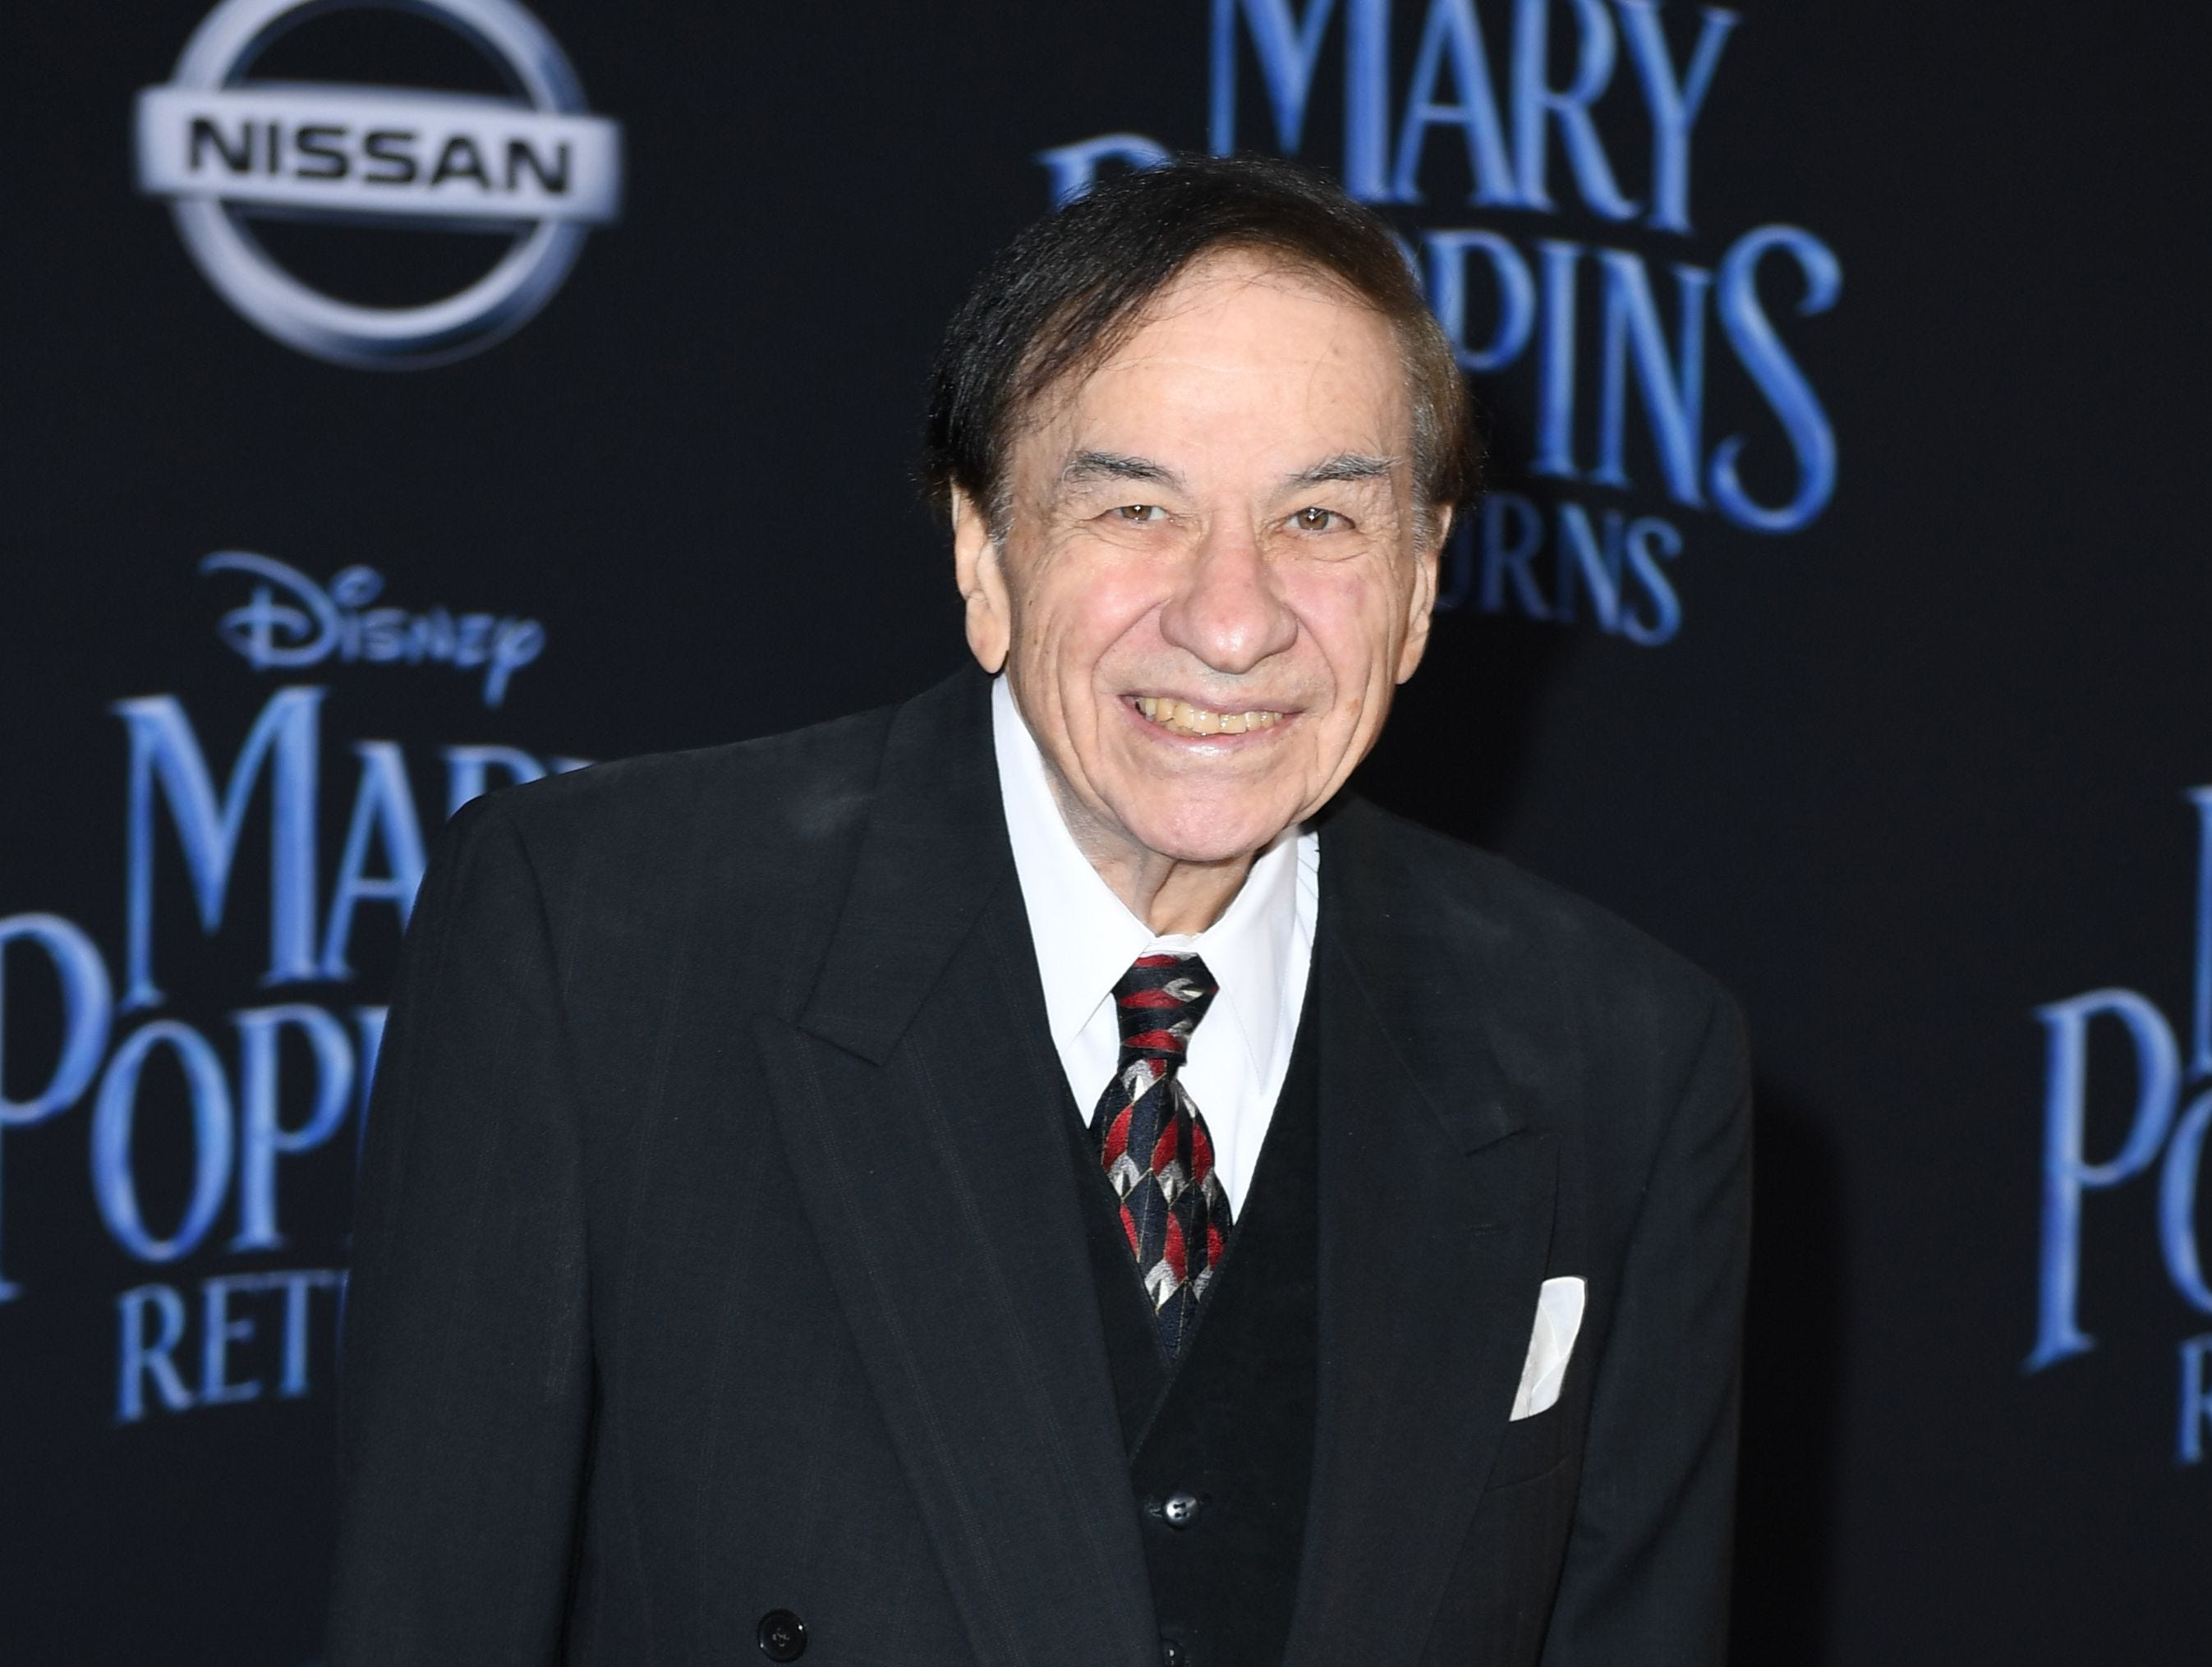 """US songwriter Richard Sherman arrives for the world premiere of Disney's """"Mary Poppins Returns"""" at the Dolby theatre in Hollywood on November 29, 2018. (Photo by VALERIE MACON / AFP)VALERIE MACON/AFP/Getty Images ORG XMIT: 'Mary Pop ORIG FILE ID: AFP_1B816Y"""